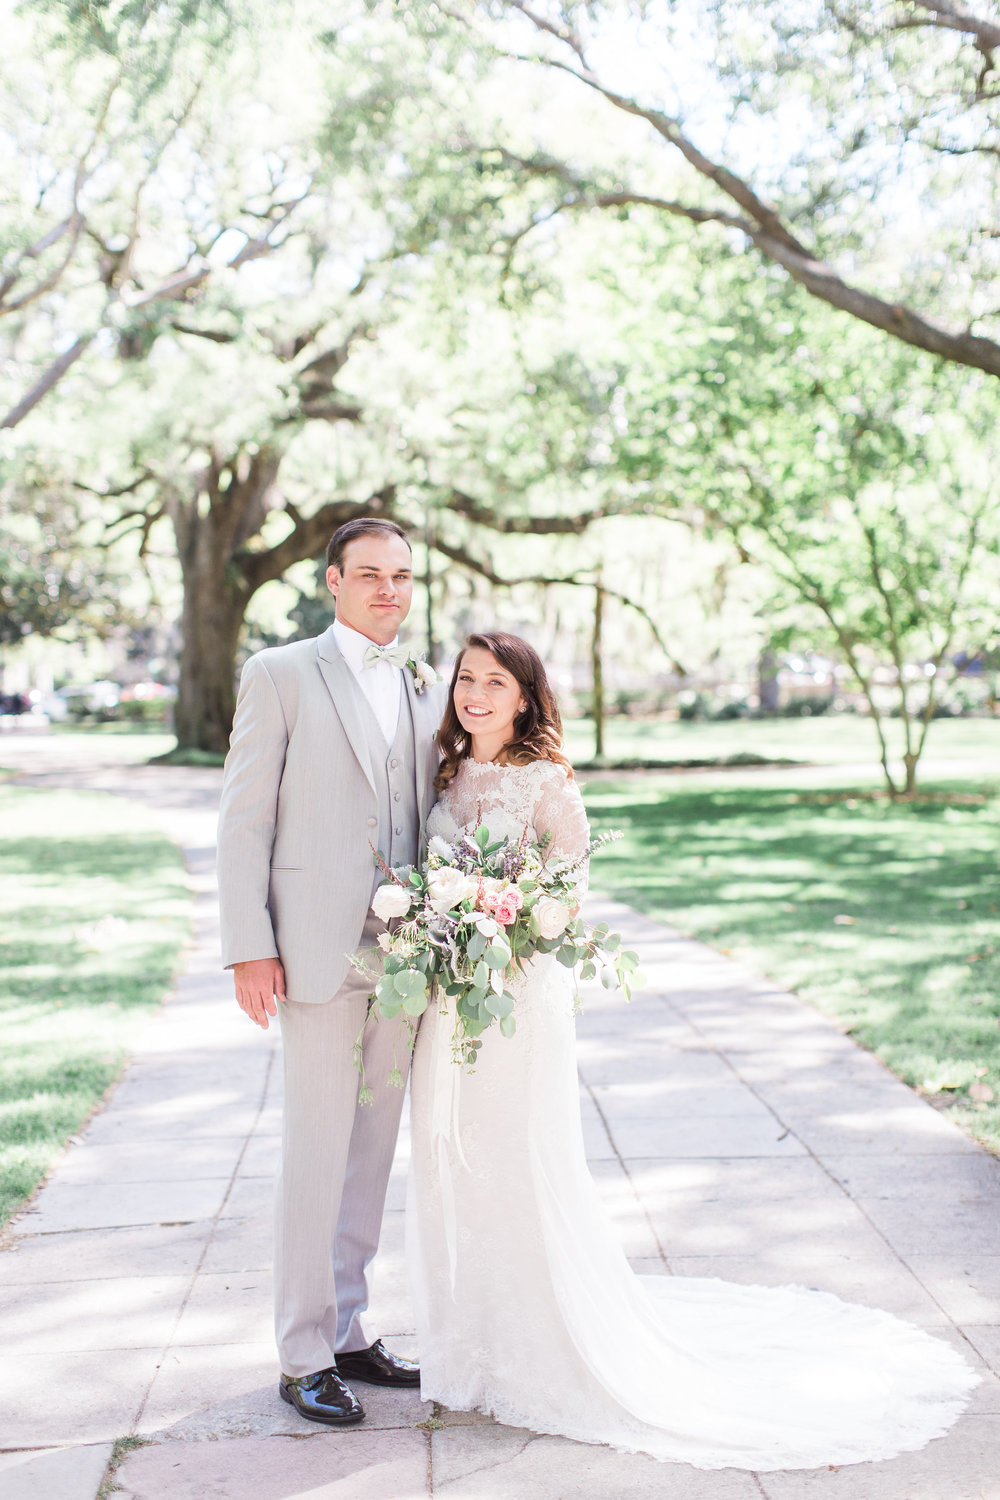 apt-b-photography-ivory-and-beau-bridal-boutique-savannah-florist-savannah-bridal-boutique-savannah-elopment-forsyth-fountain-wedding-intimate-wedding-southern-elopement-savannah-weddings-15.jpg